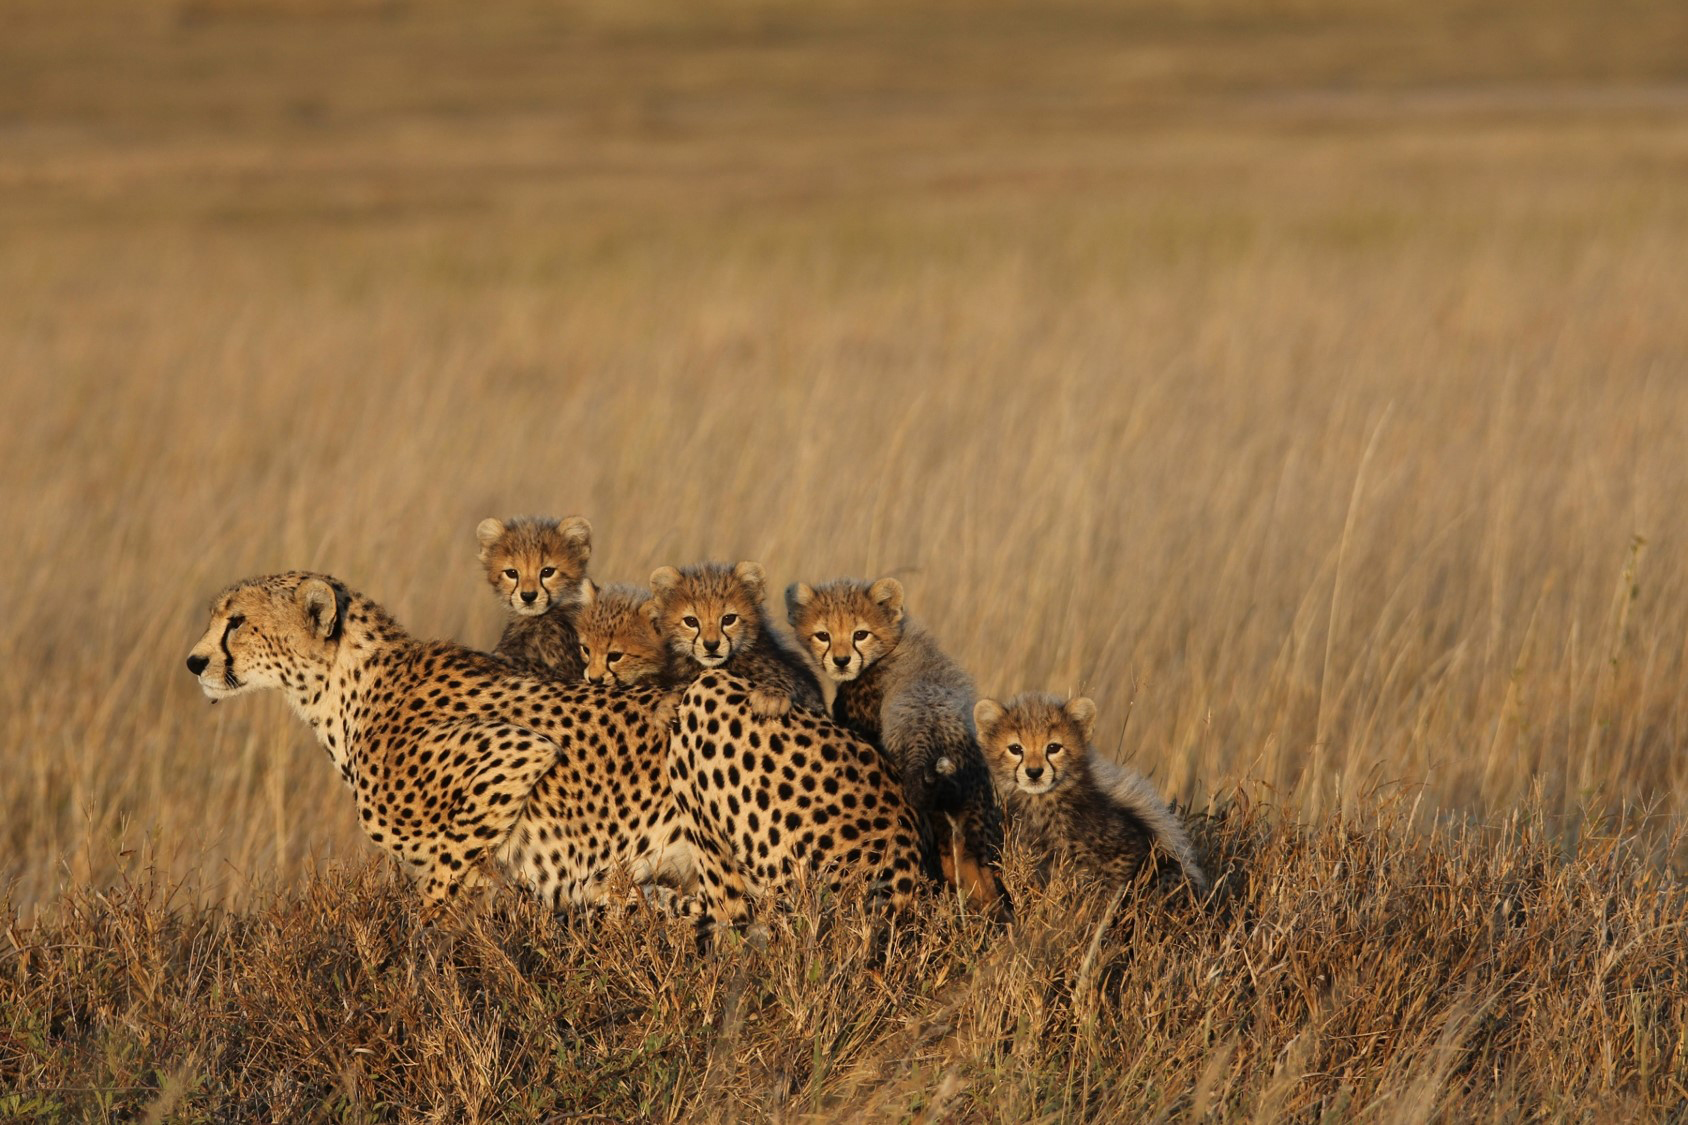 An adult cheetah with five cubs in a grass-covered plain.